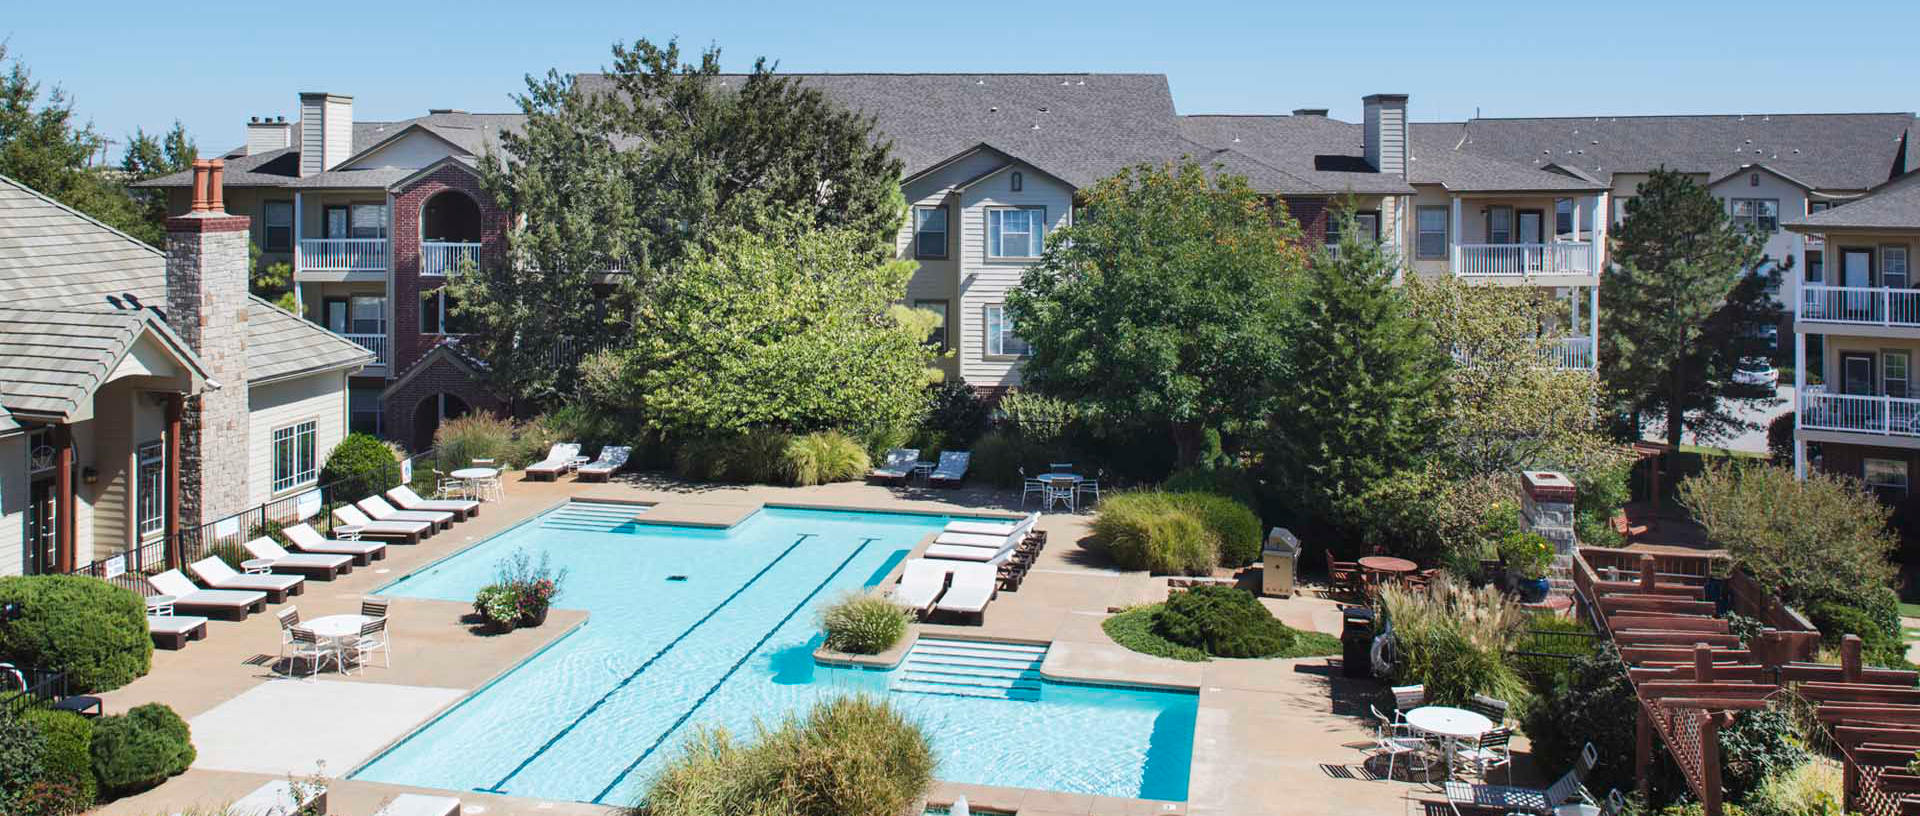 A view of the swimming pool, clubhouse and apartment building at Crown Martin Park Apartments in Oklahoma City, Oklahoma.